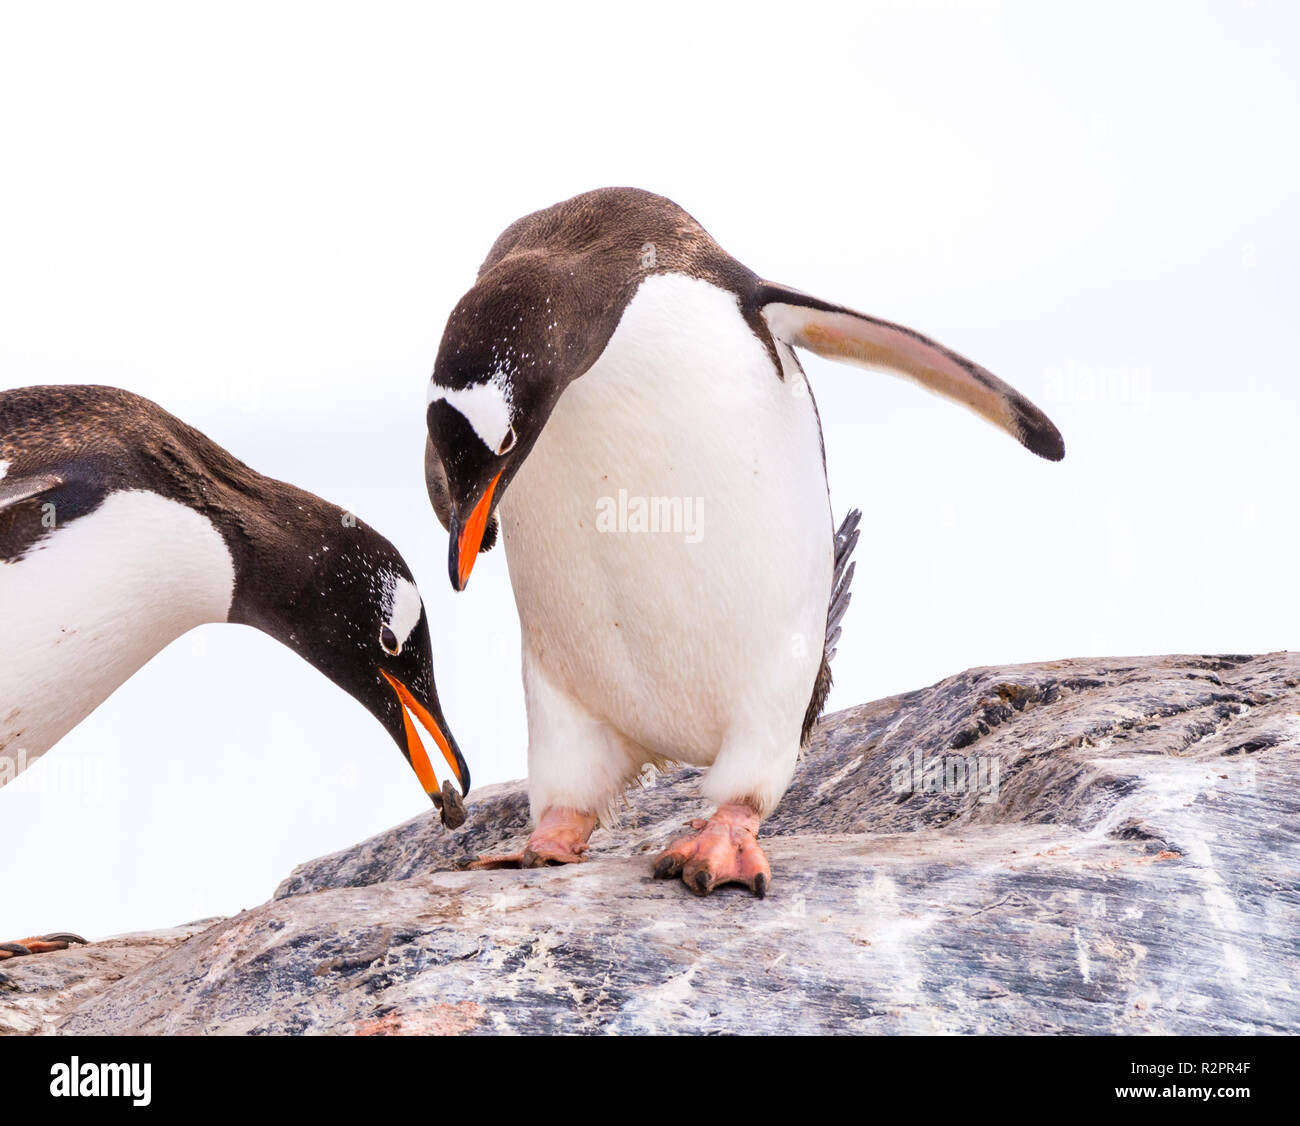 Male gentoo penguin offering stone to partner, who is bowing while standing on rock, Mikkelsen Harbour on Trinity Island, Antarctica - Stock Image